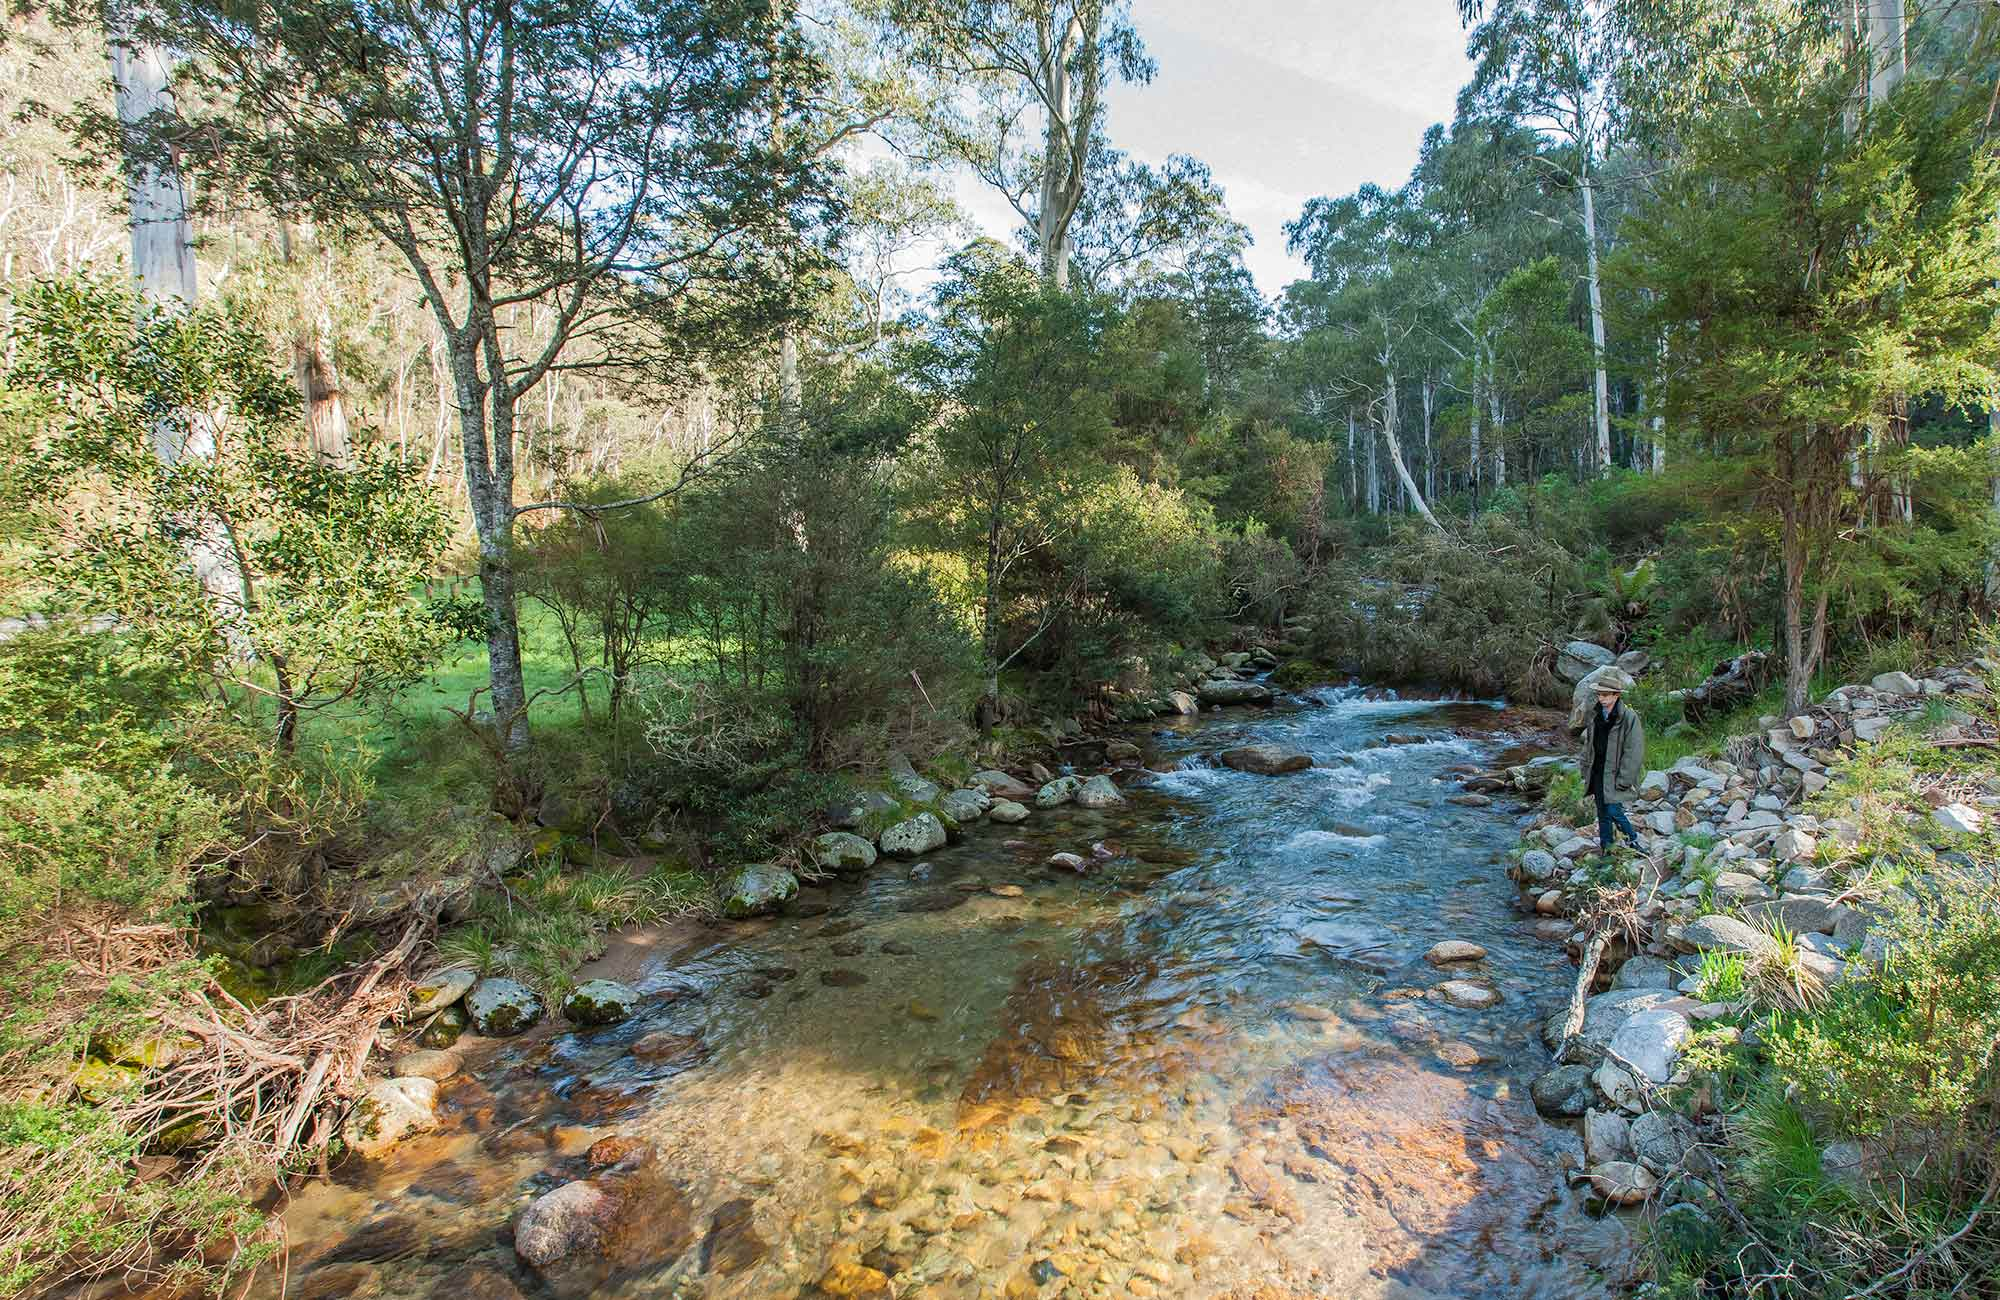 Leatherbarrel Creek picnic area, Kosciuszko National Park. Photo: Murray Vanderveer